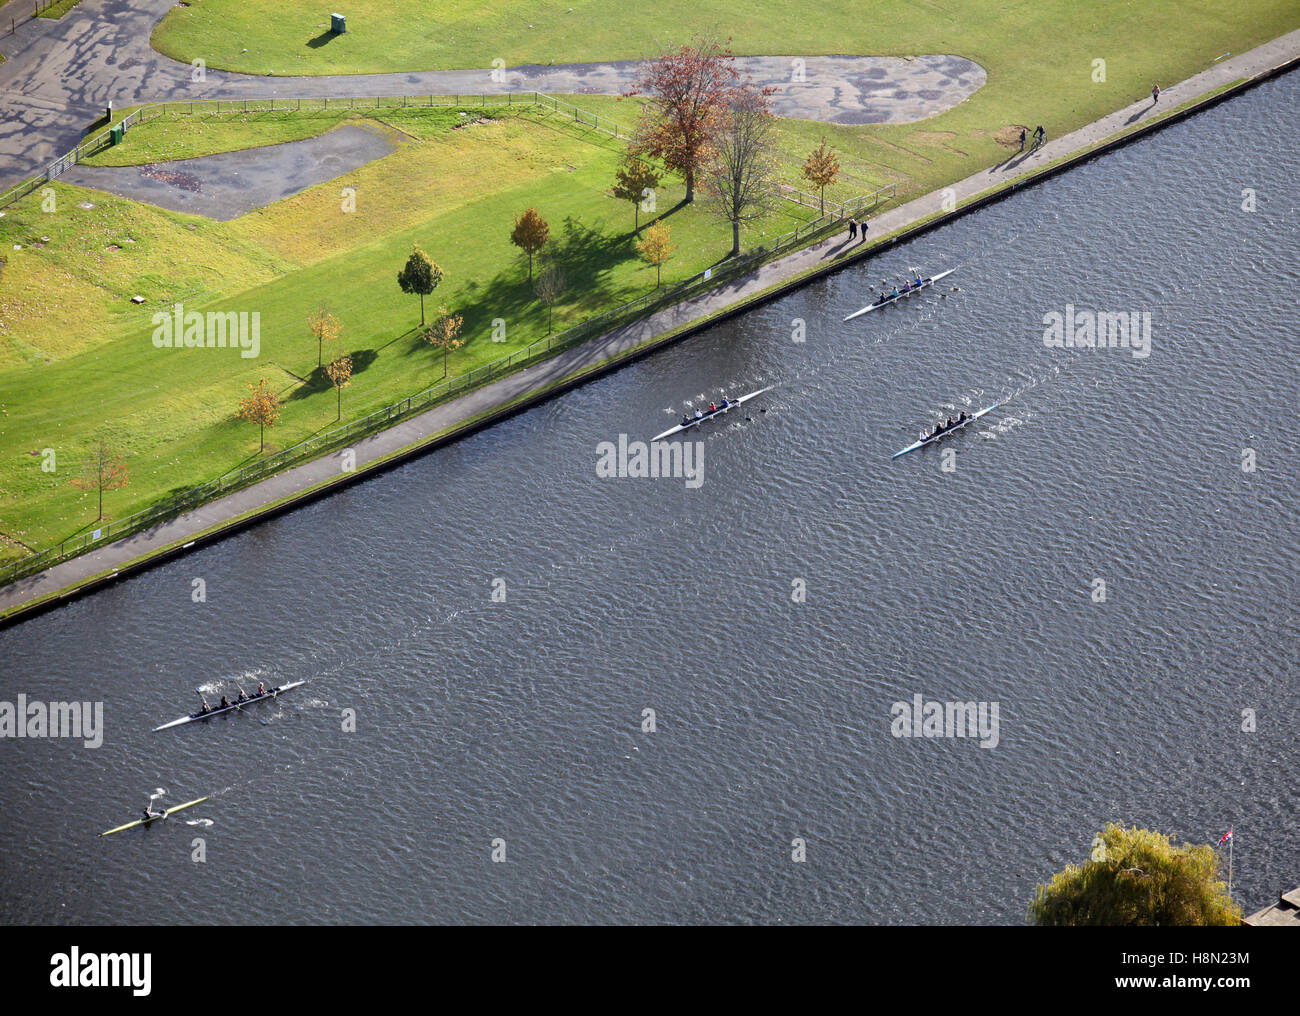 aerial view of sportsmen rowing on the Thames River at Henley-on-Thames, UK - Stock Image